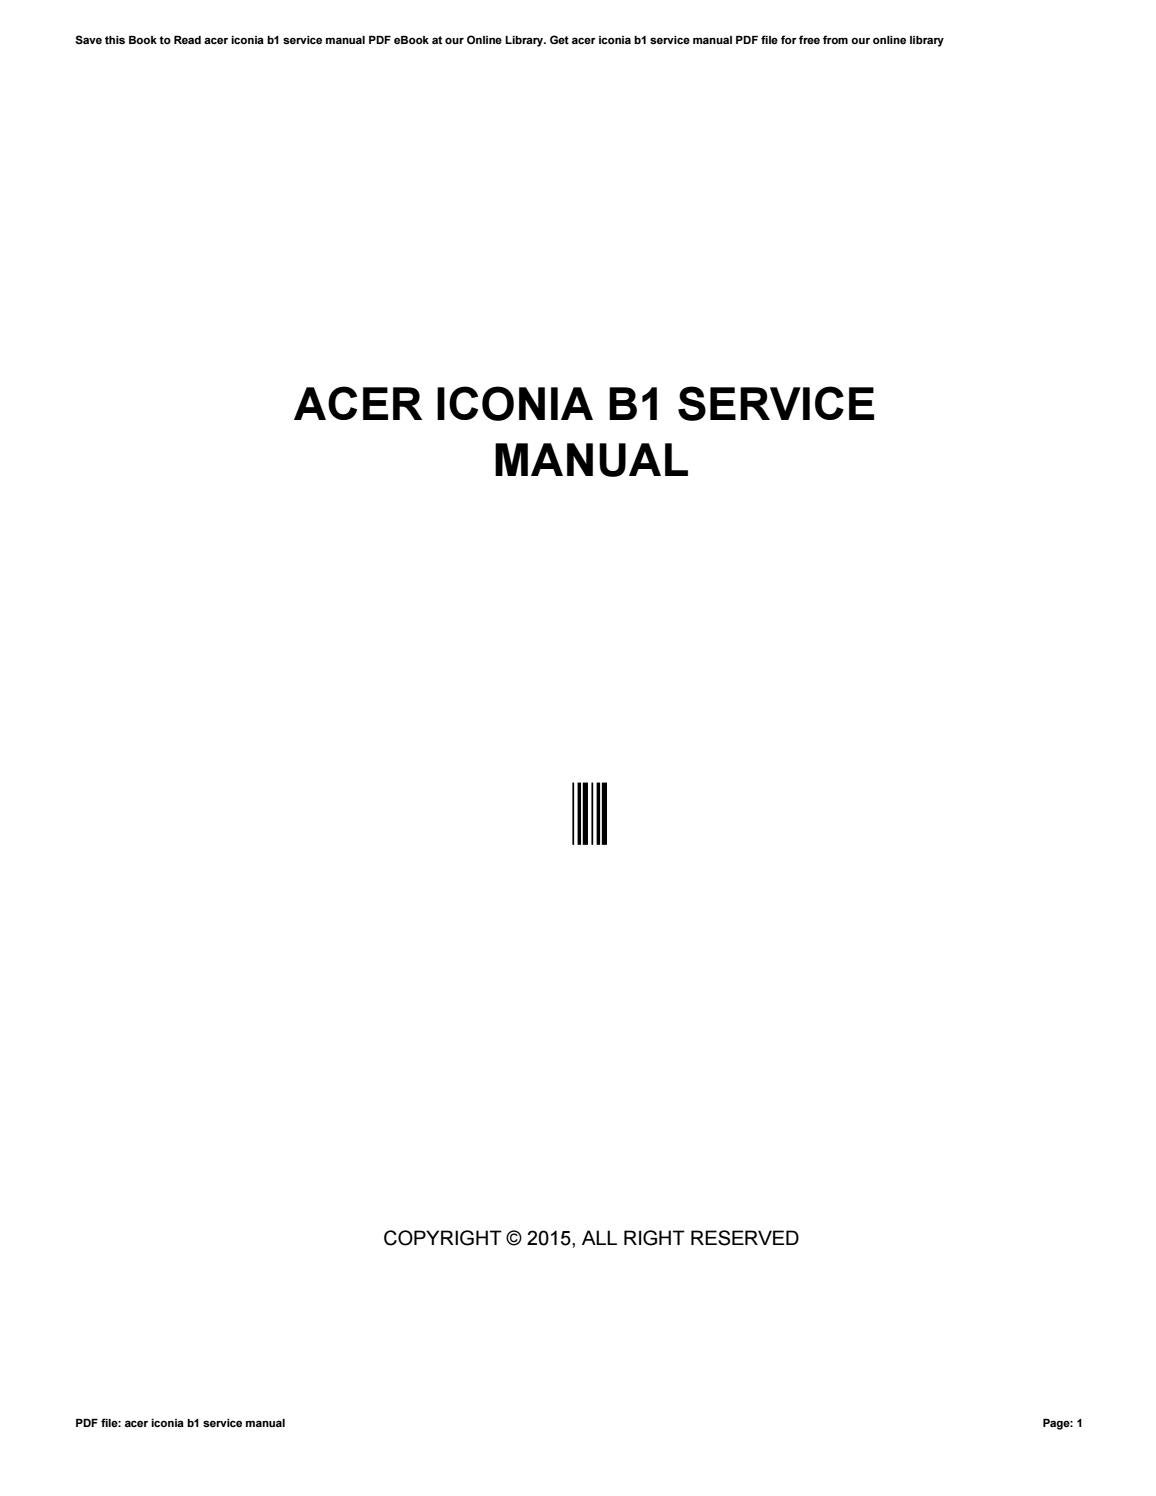 ... Array - malaguti phantom f12 service manual rh malaguti phantom f12 service  manual elzplorers de